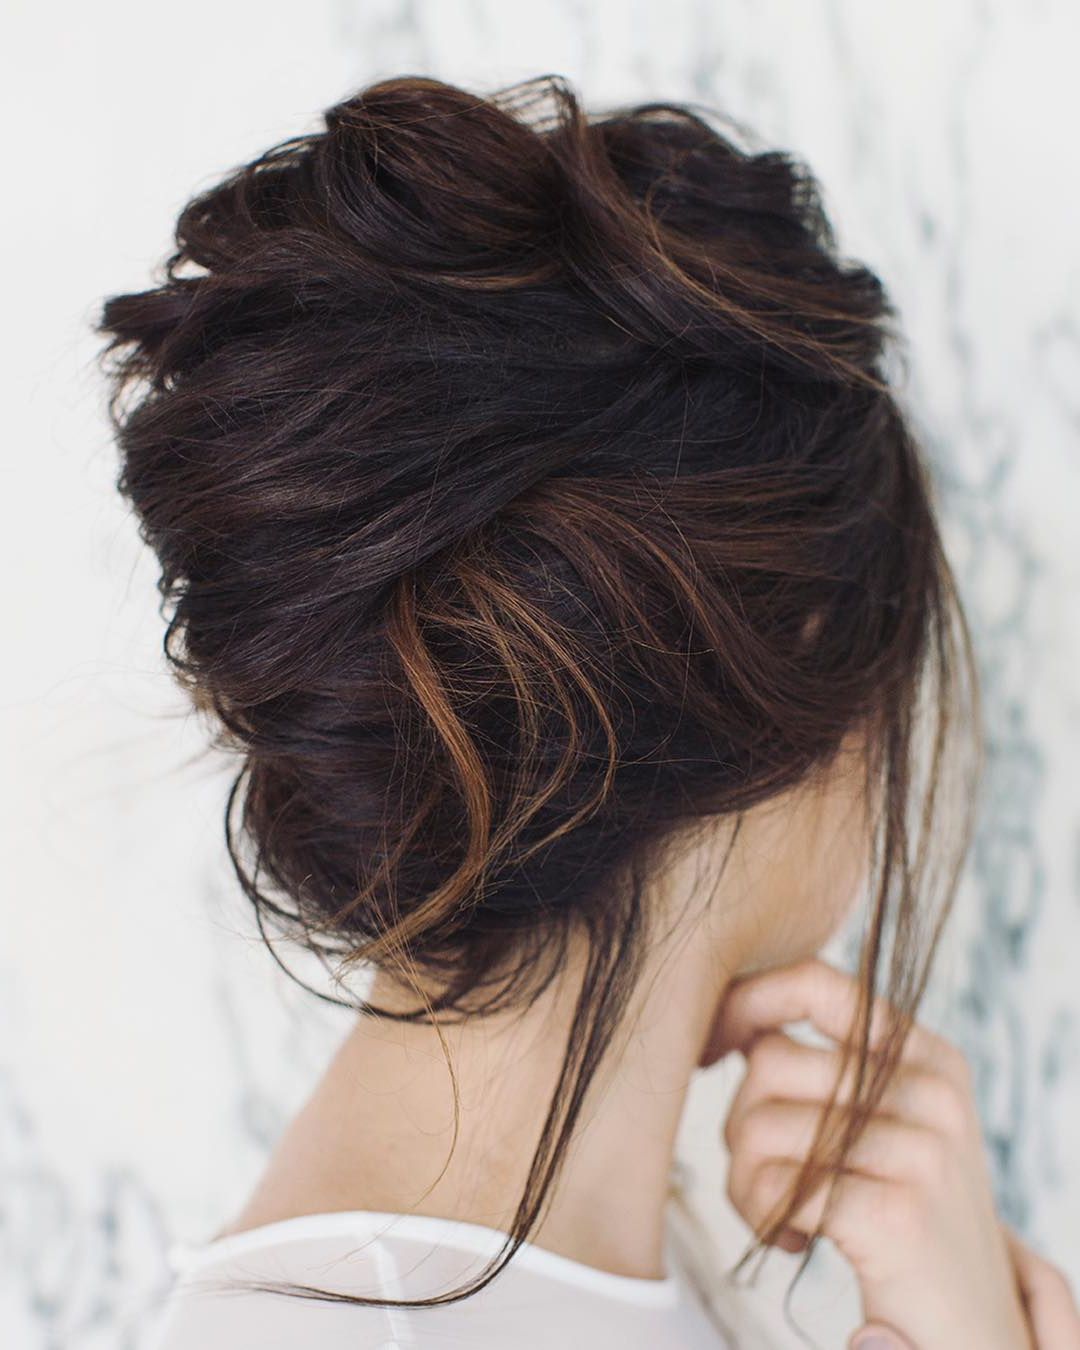 10 Gorgeous Prom Updos For Long Hair, Prom Updo Hairstyles 2019 Throughout Fashionable Twisted Low Bun Hairstyles For Prom (View 18 of 20)